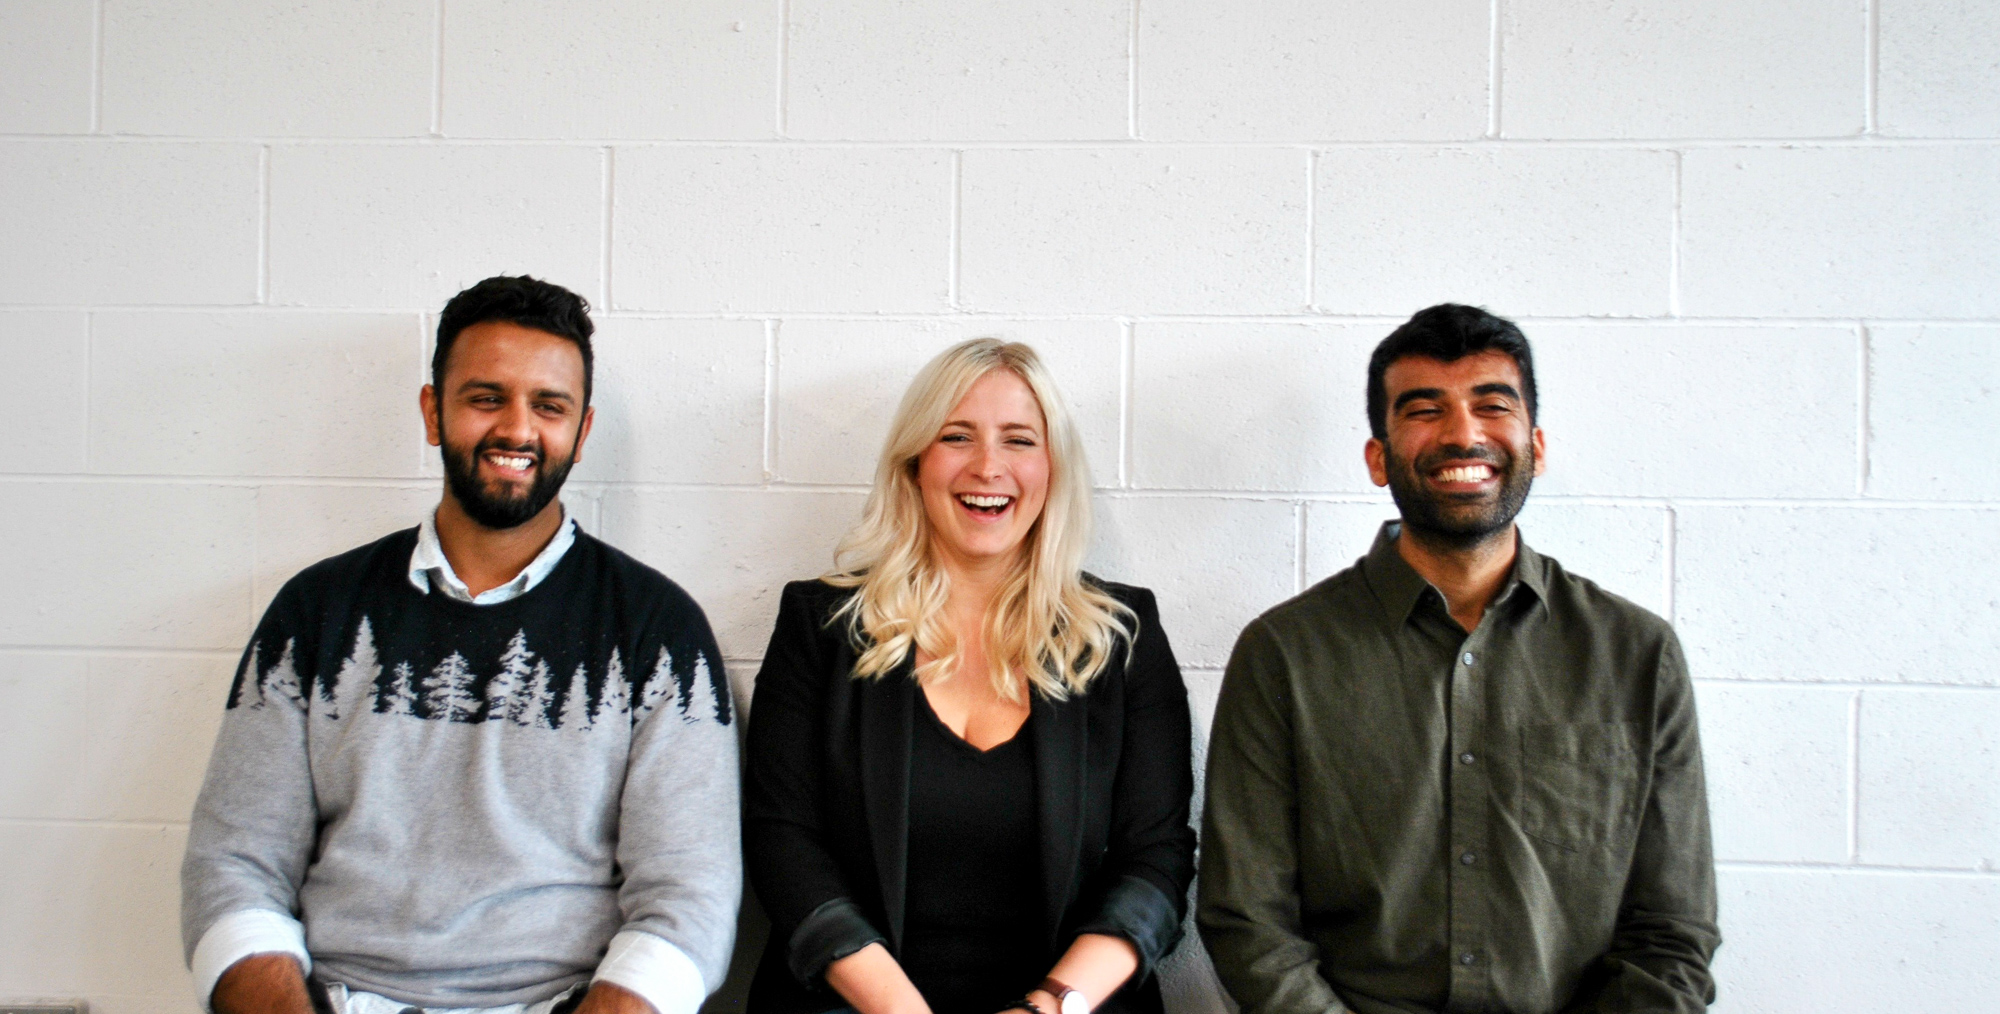 The Fresh Prep team. Dhruv Sood, Becky Switzer and Husein Rahemtulla.